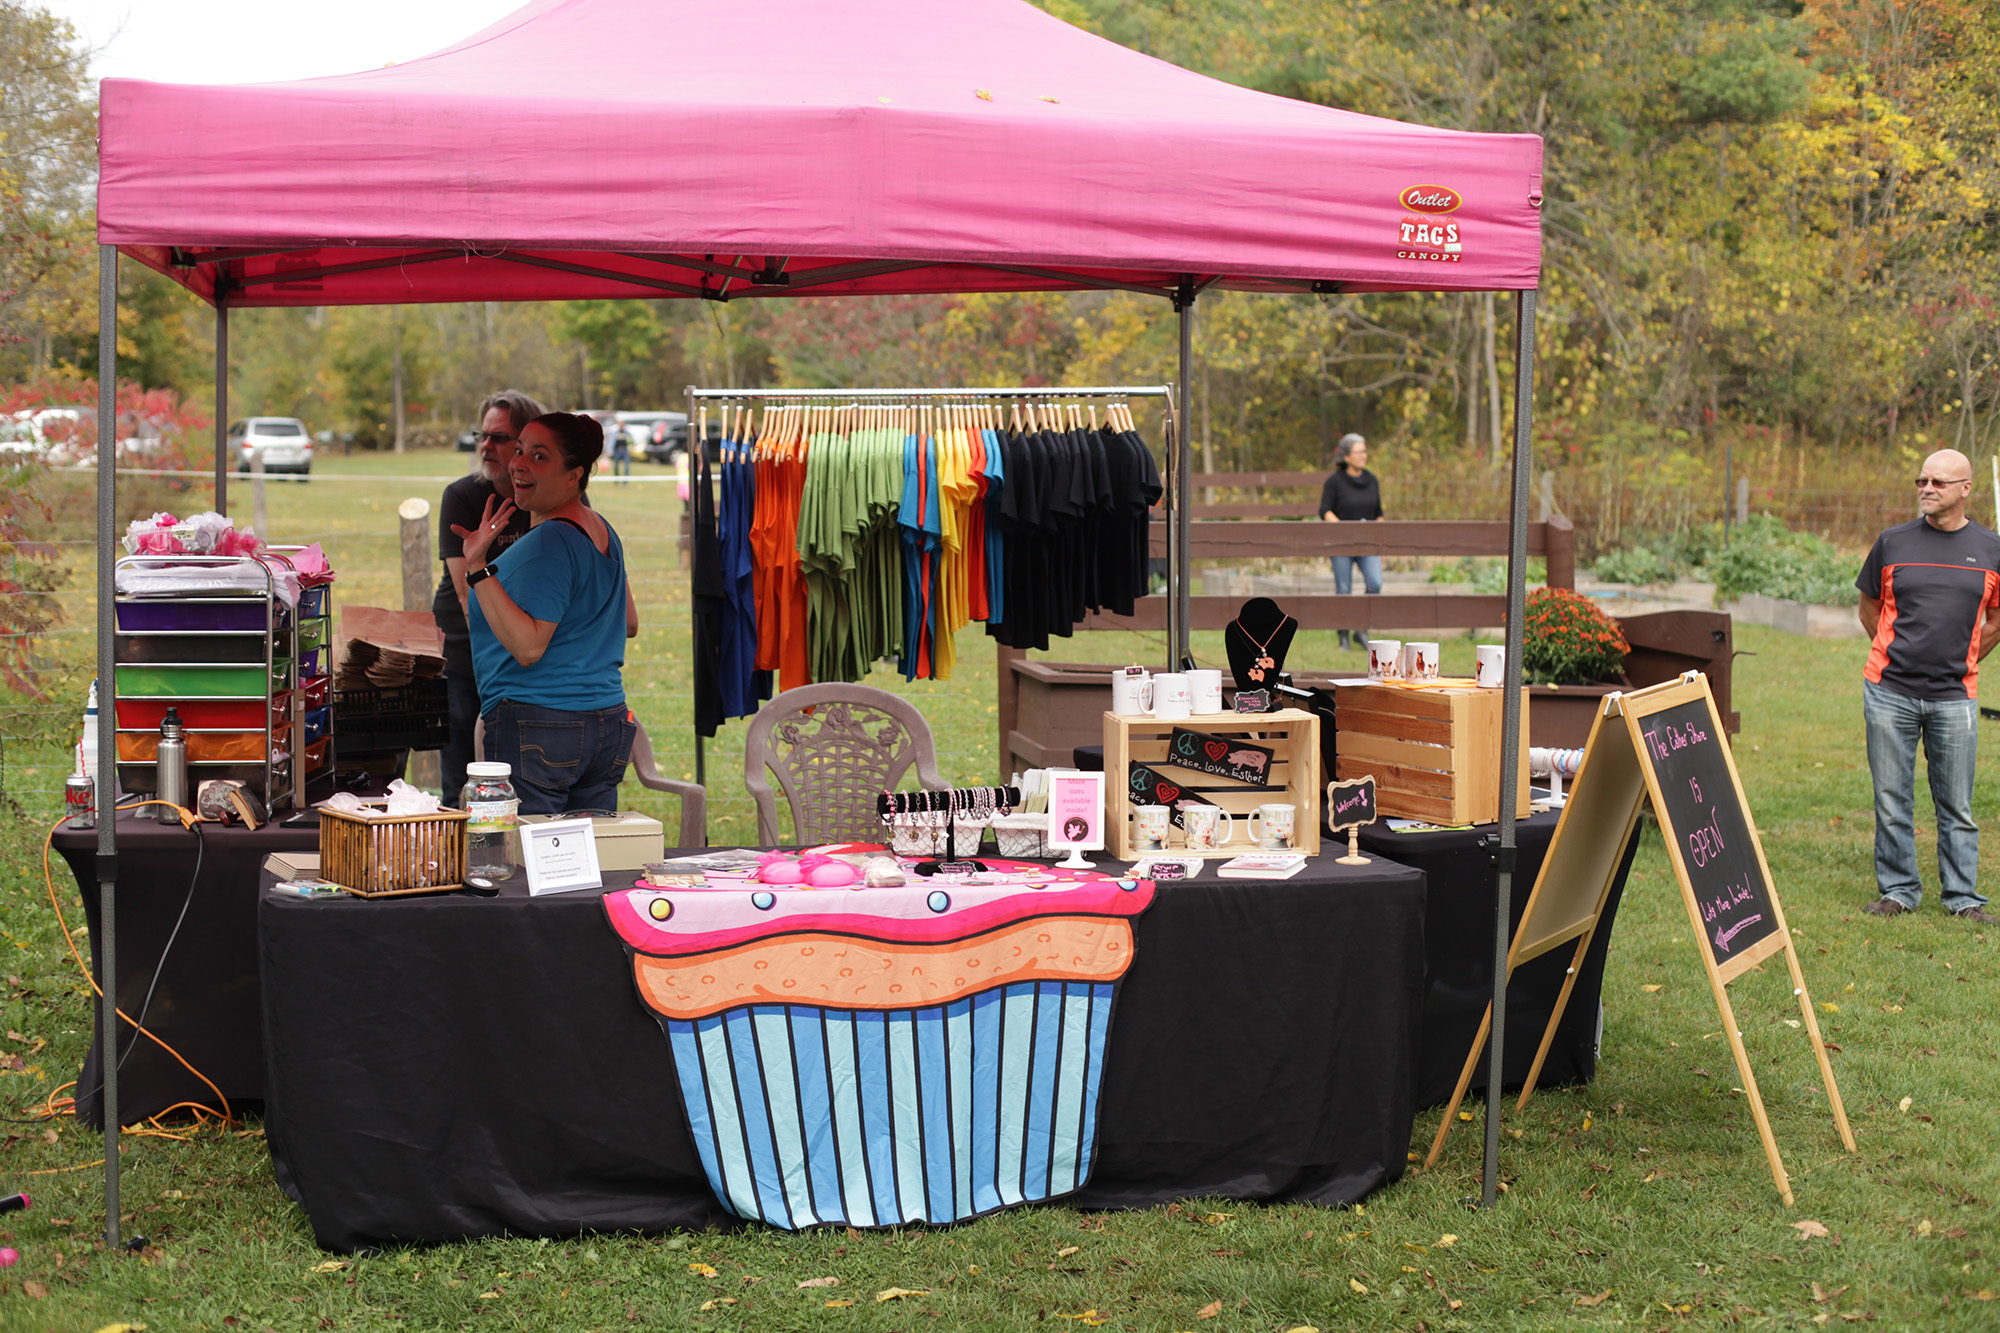 Esther_store_tent_2.JPG